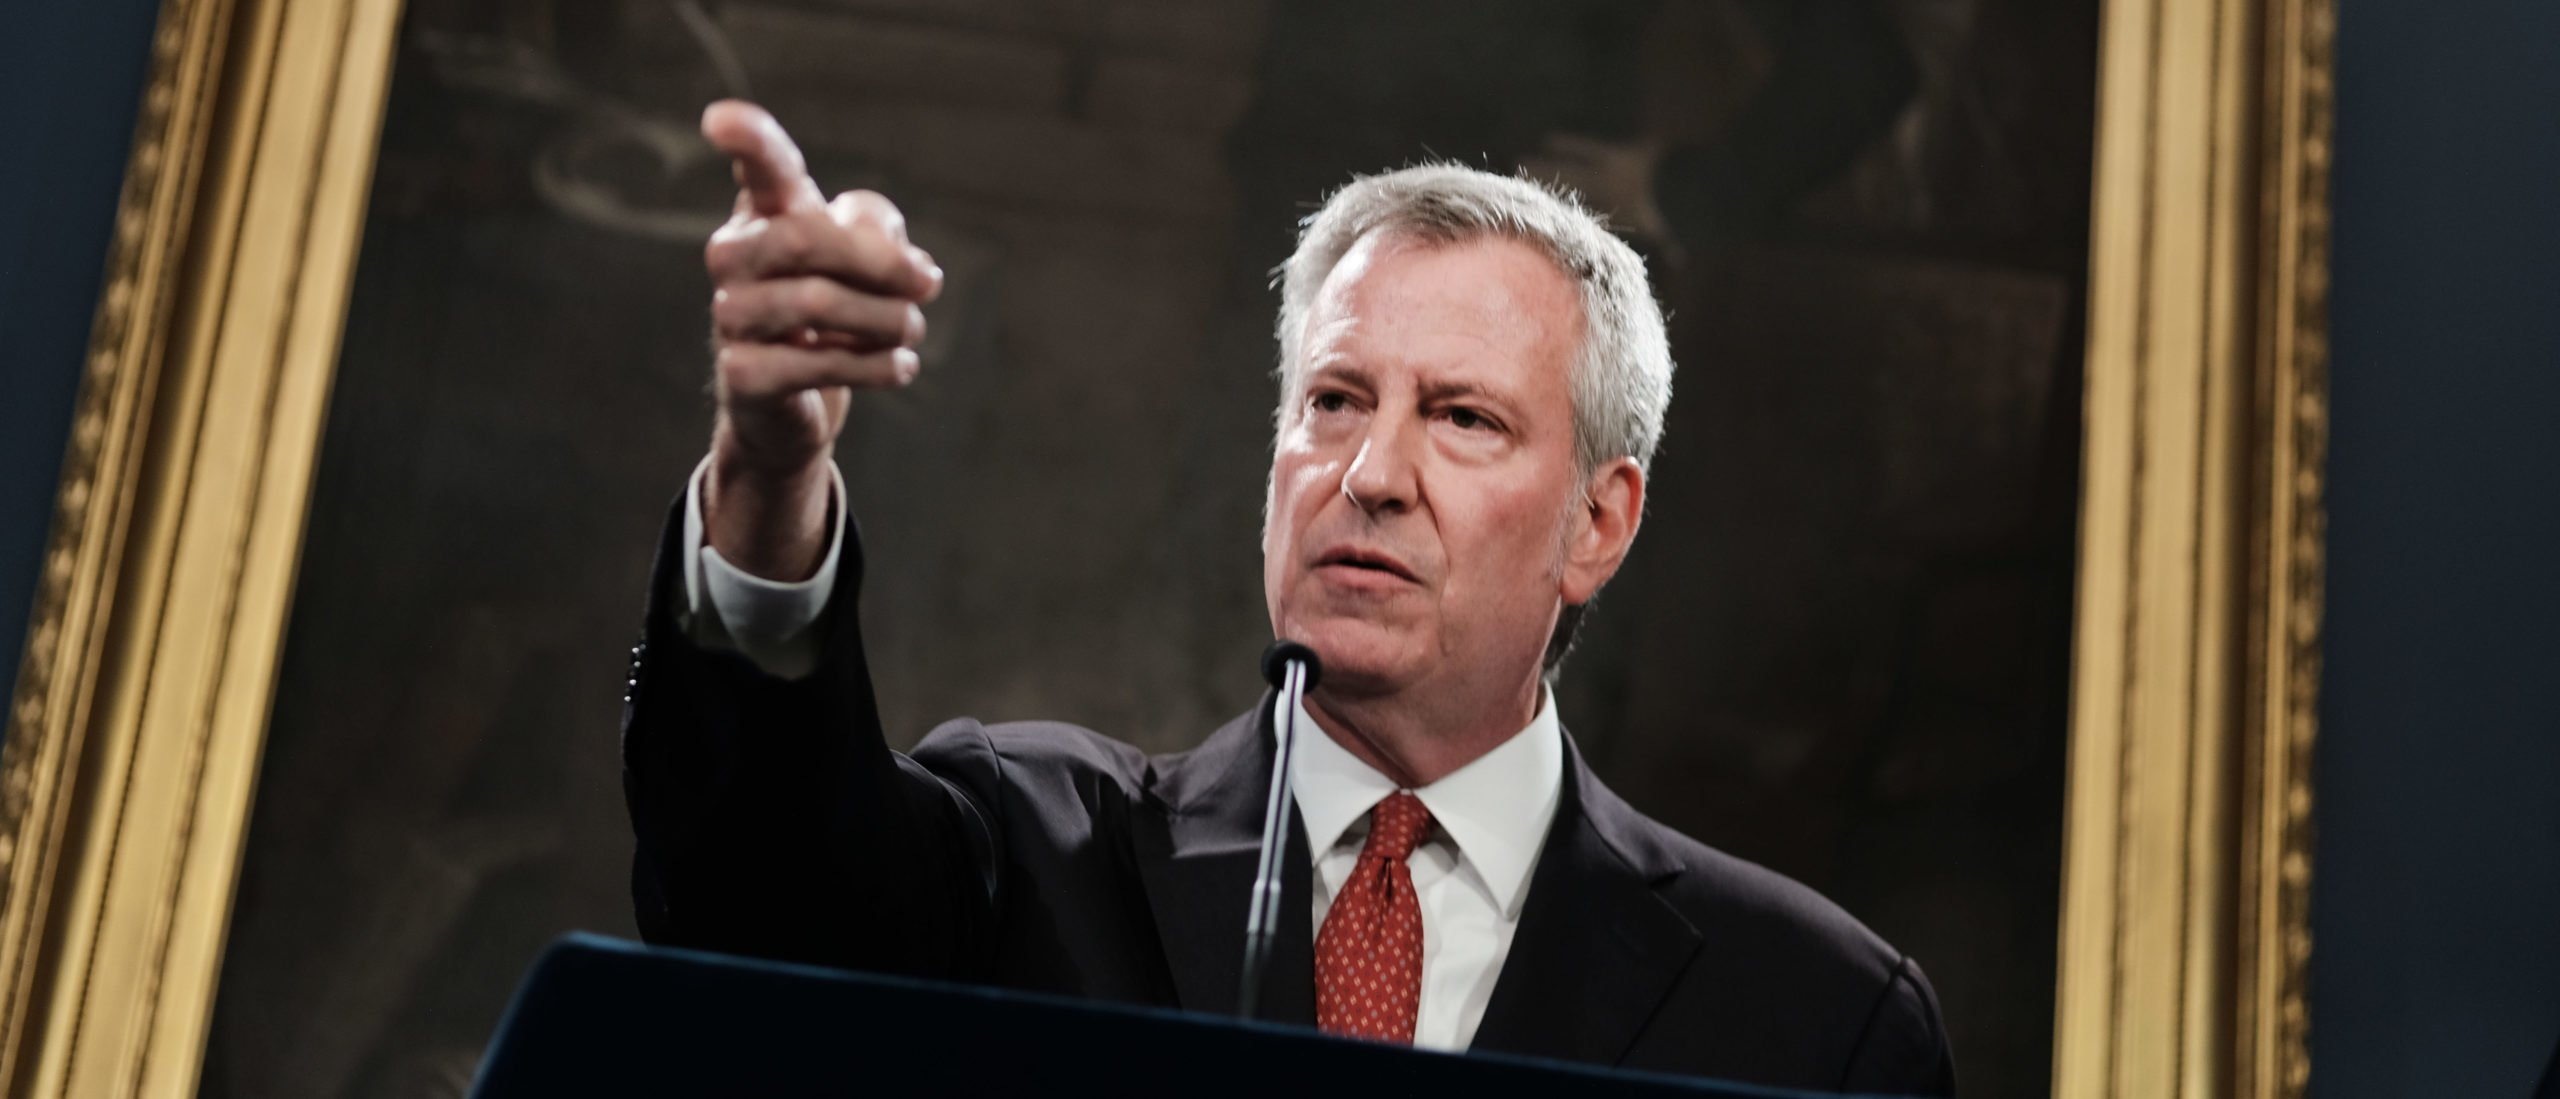 New York City Mayor Bill de Blasio speaks to the media following news that a judge has recommended that Daniel Pantaleo, the New York City police officer at the center of Eric Garner's July 2014 death case, should be fired from the police department on August 02, 2019 in New York City. It will now be up to the city's police commissioner whether Pantaleo will keep his job. (Photo by Spencer Platt/Getty Images)